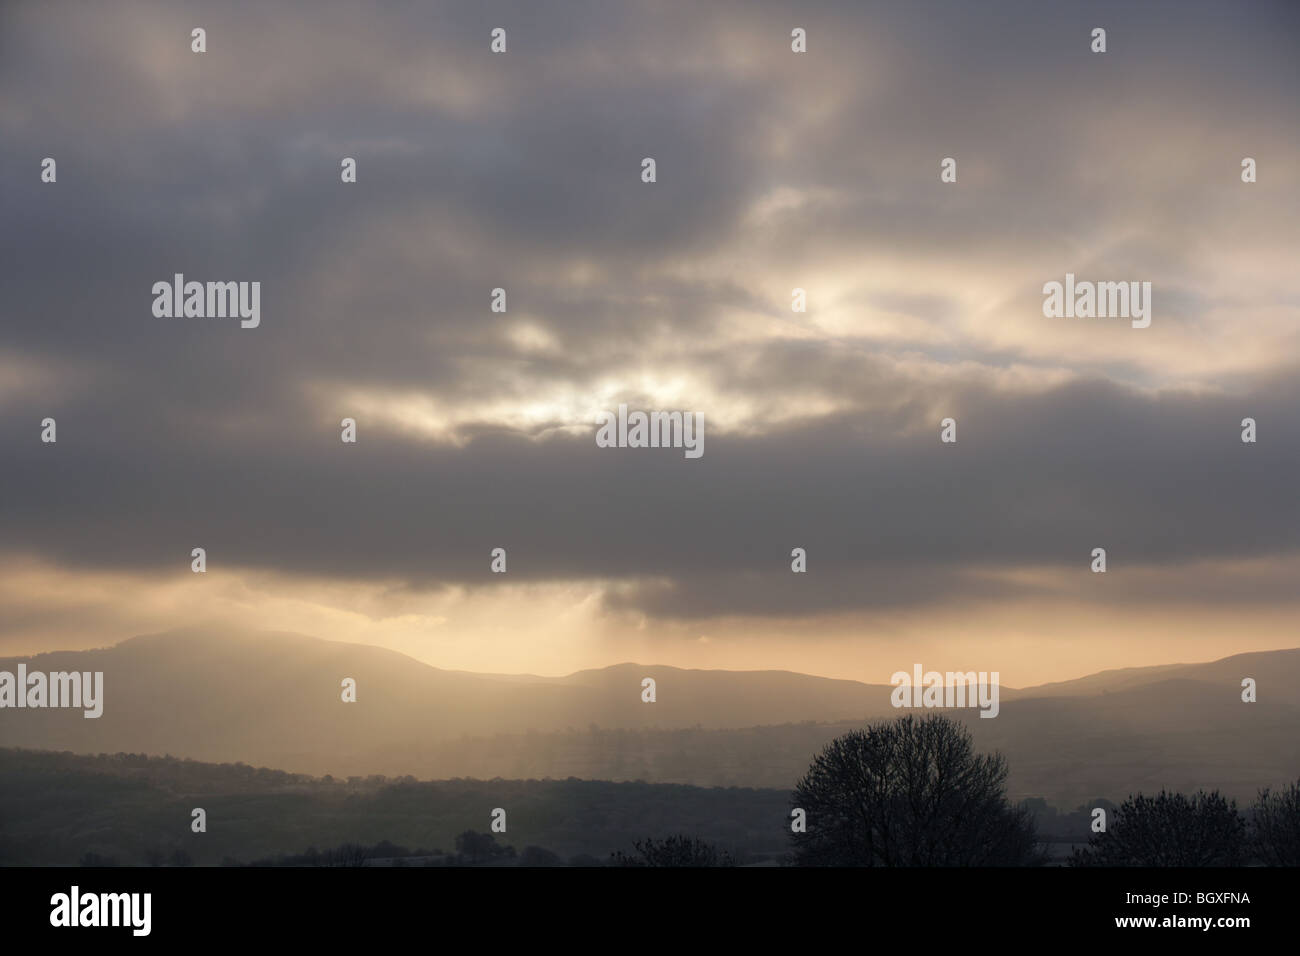 Heavens rays over Moel Famau from Halkyn mountain. - Stock Image